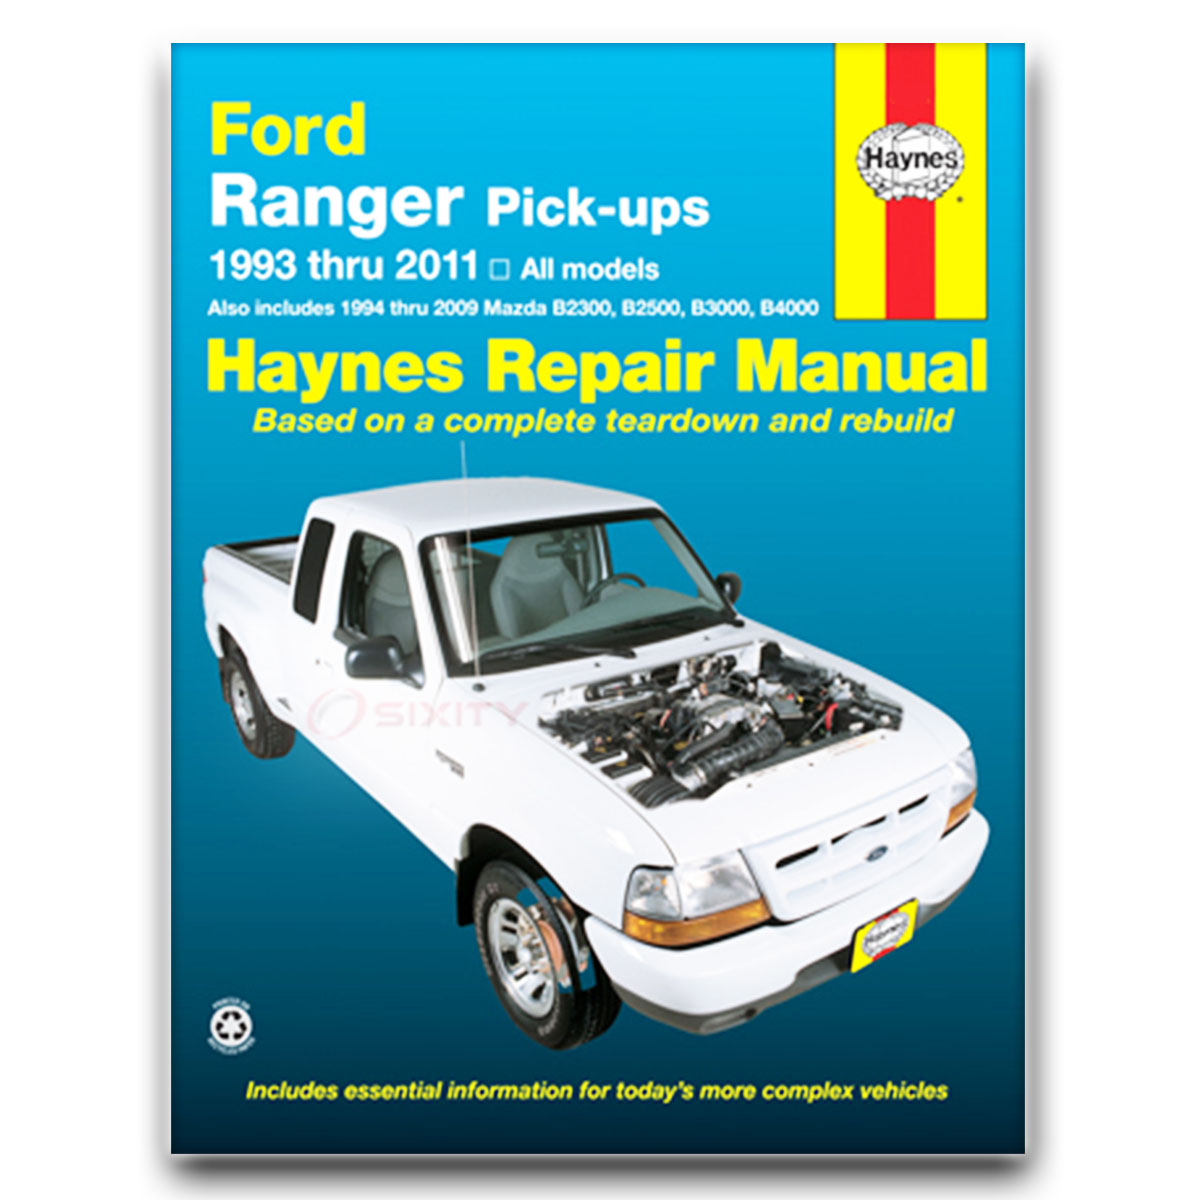 Haynes Repair Manual 36071 for Ford Ranger Mazda Pick-ups 93-10 Shop  Service oo